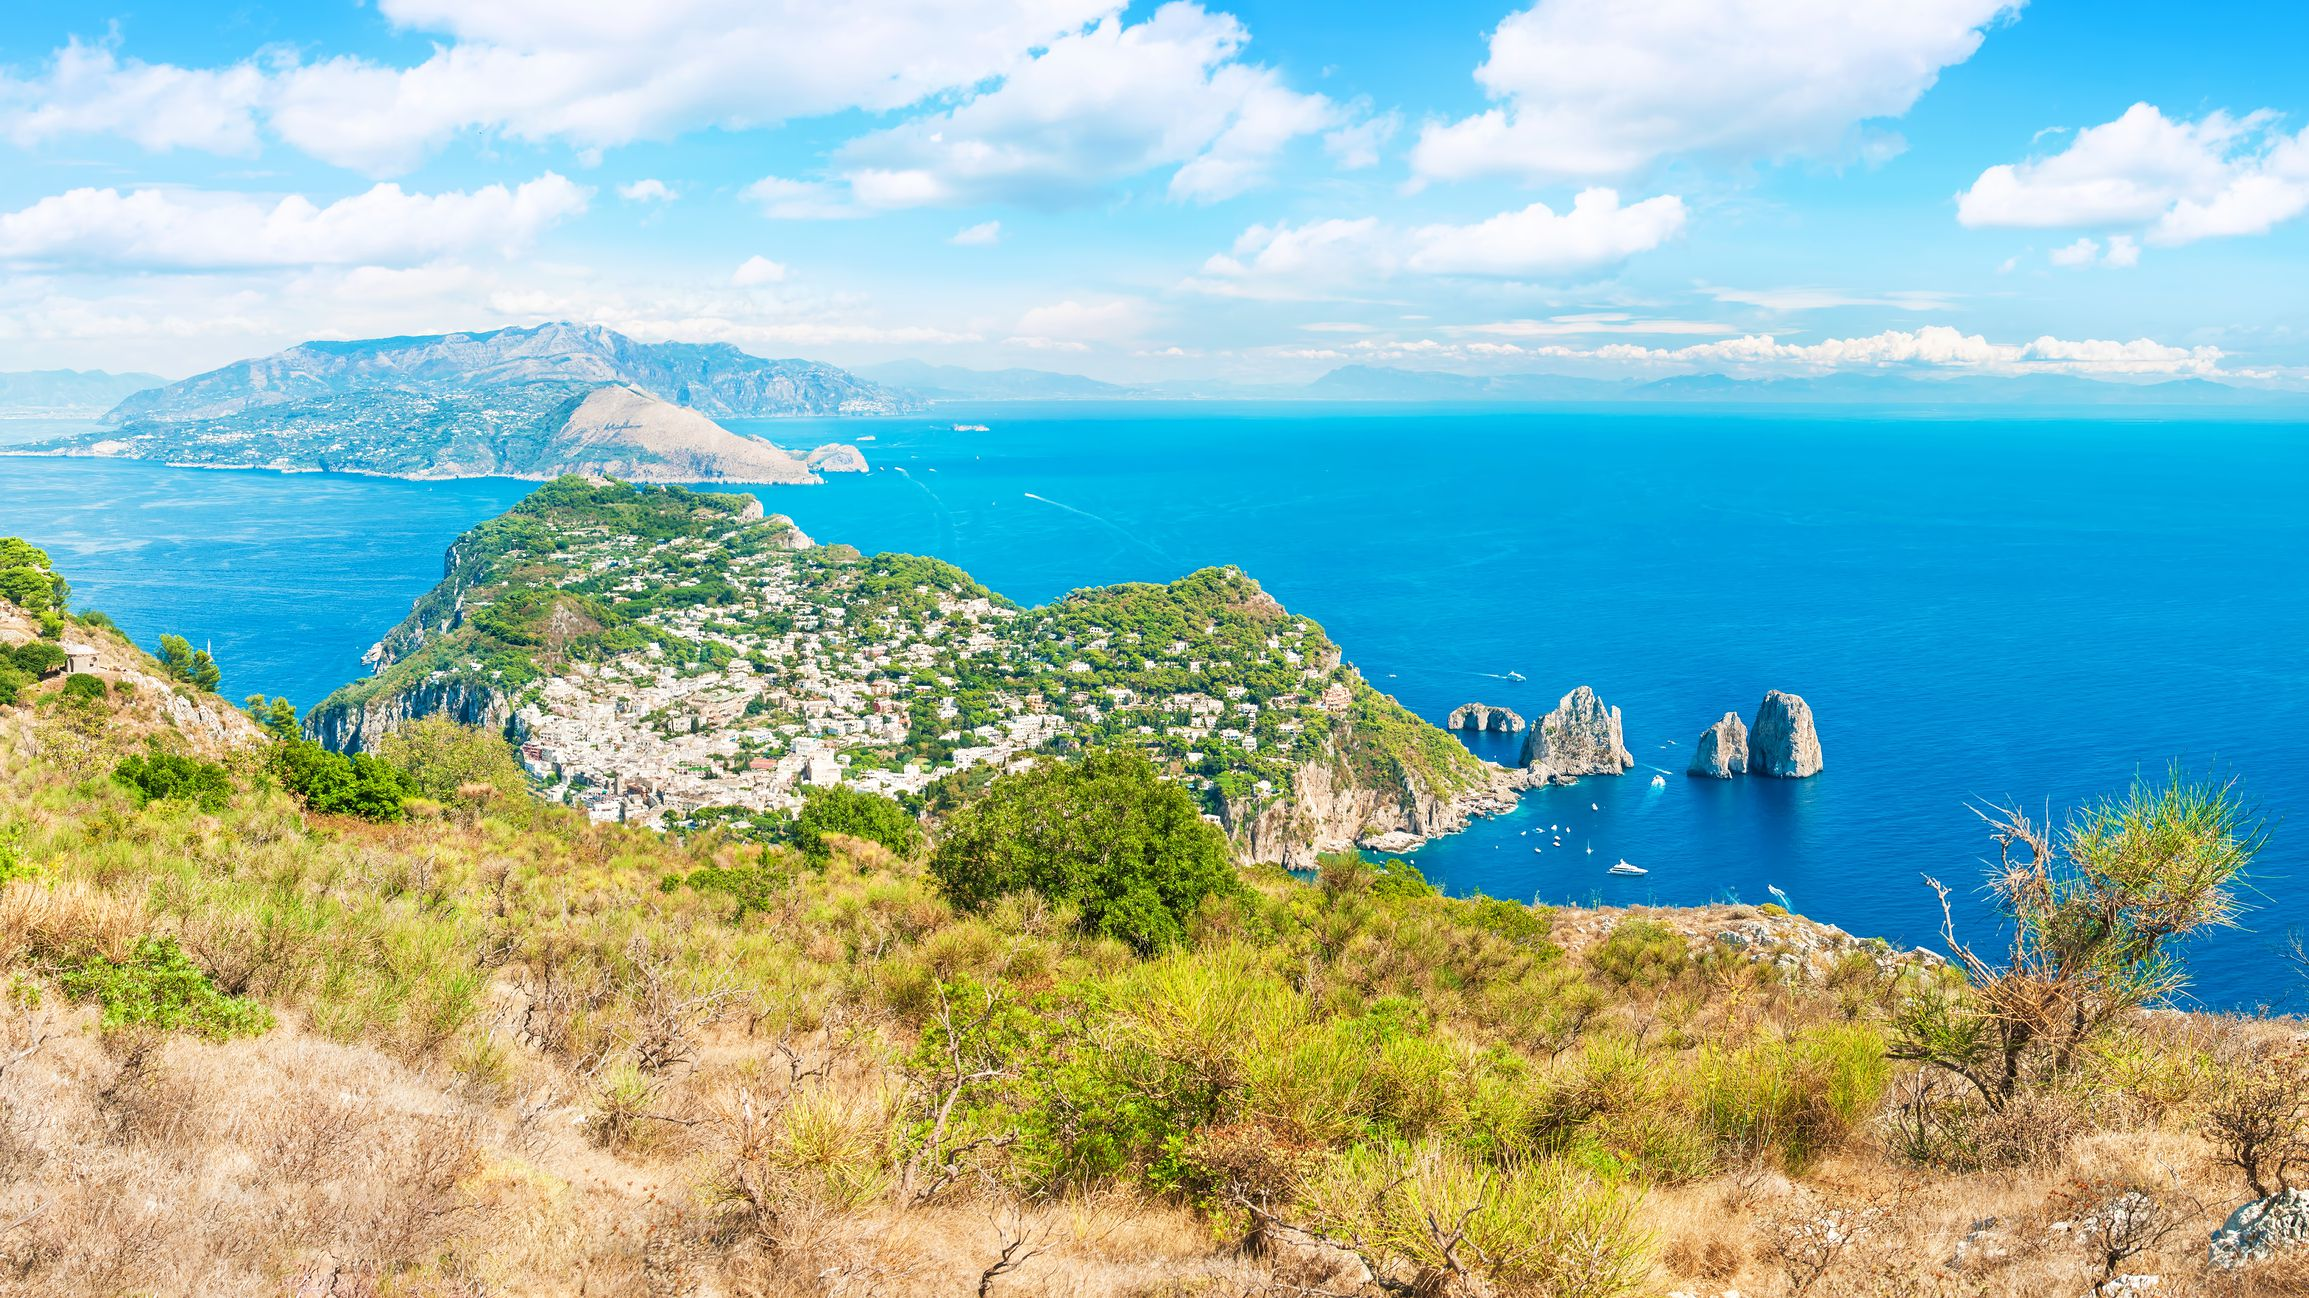 panoramic view of sea, city and mountains